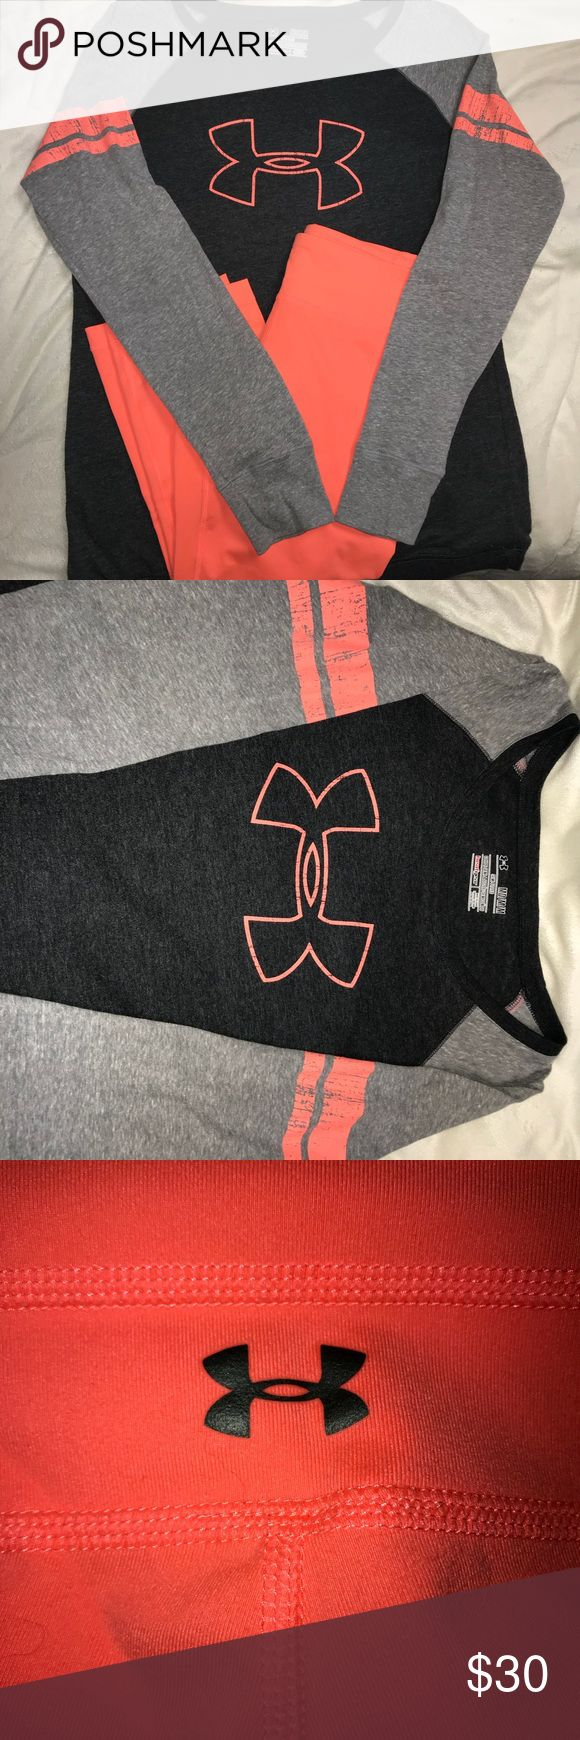 Under Armour long sleeve shirt with coral capris Under Armour medium gray, coral and white long sleeve baseball tee with matching medium coral Capri leggings Under Armour Other